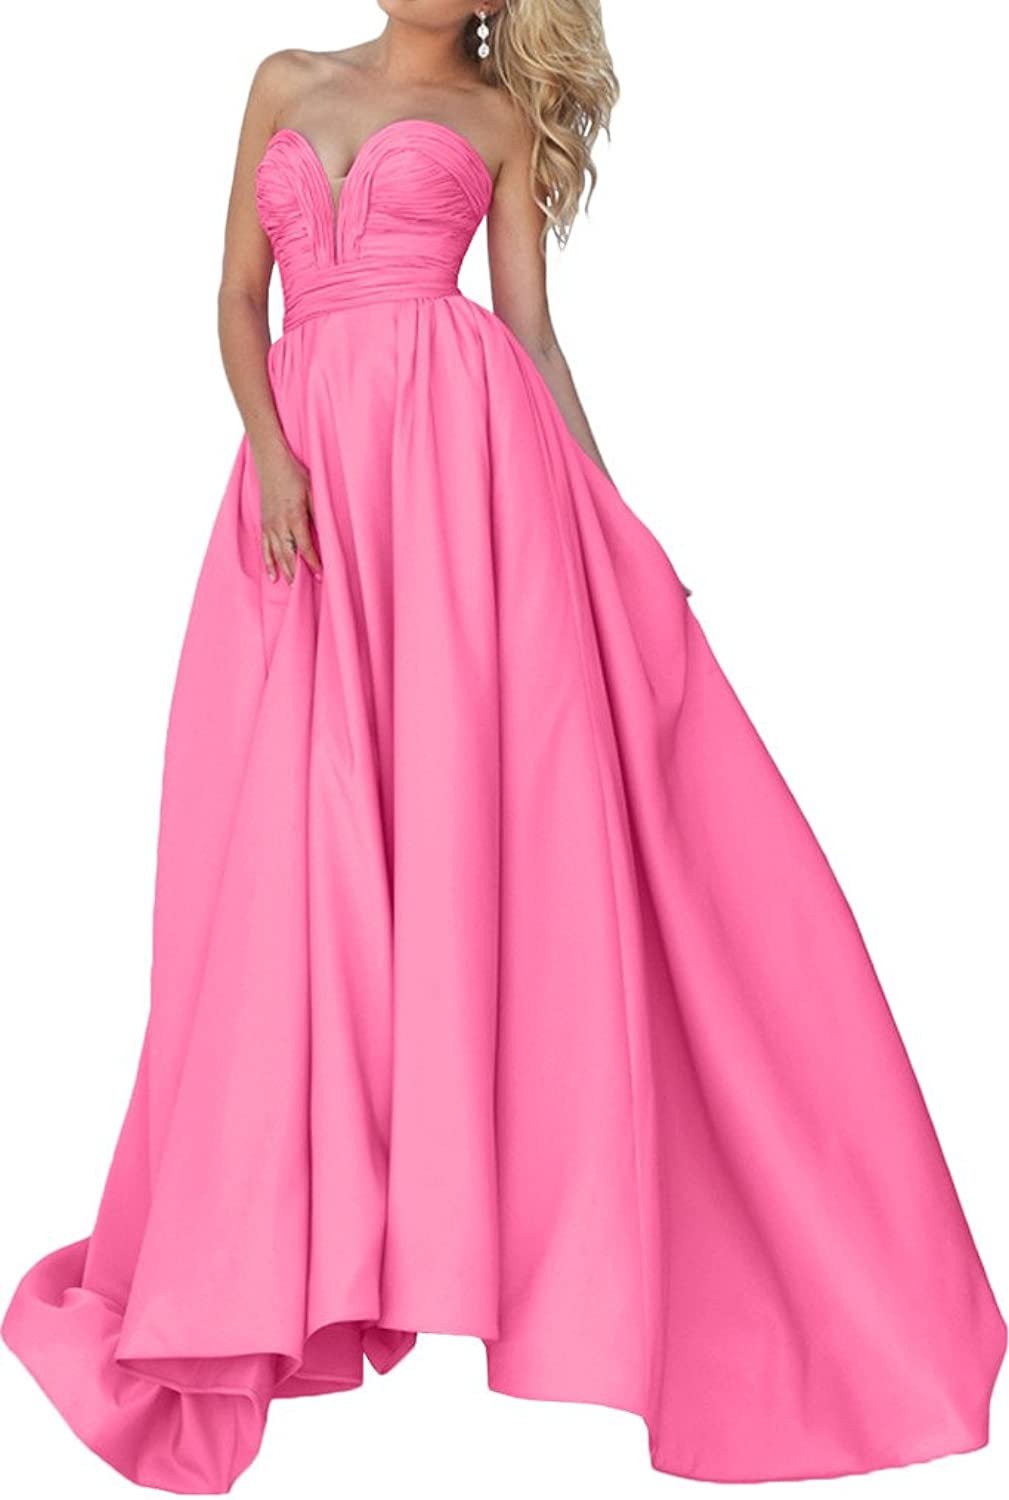 Avril Dress Strapless Sweetheart Ball Gown Satin Homecoming Dress Prom Dress